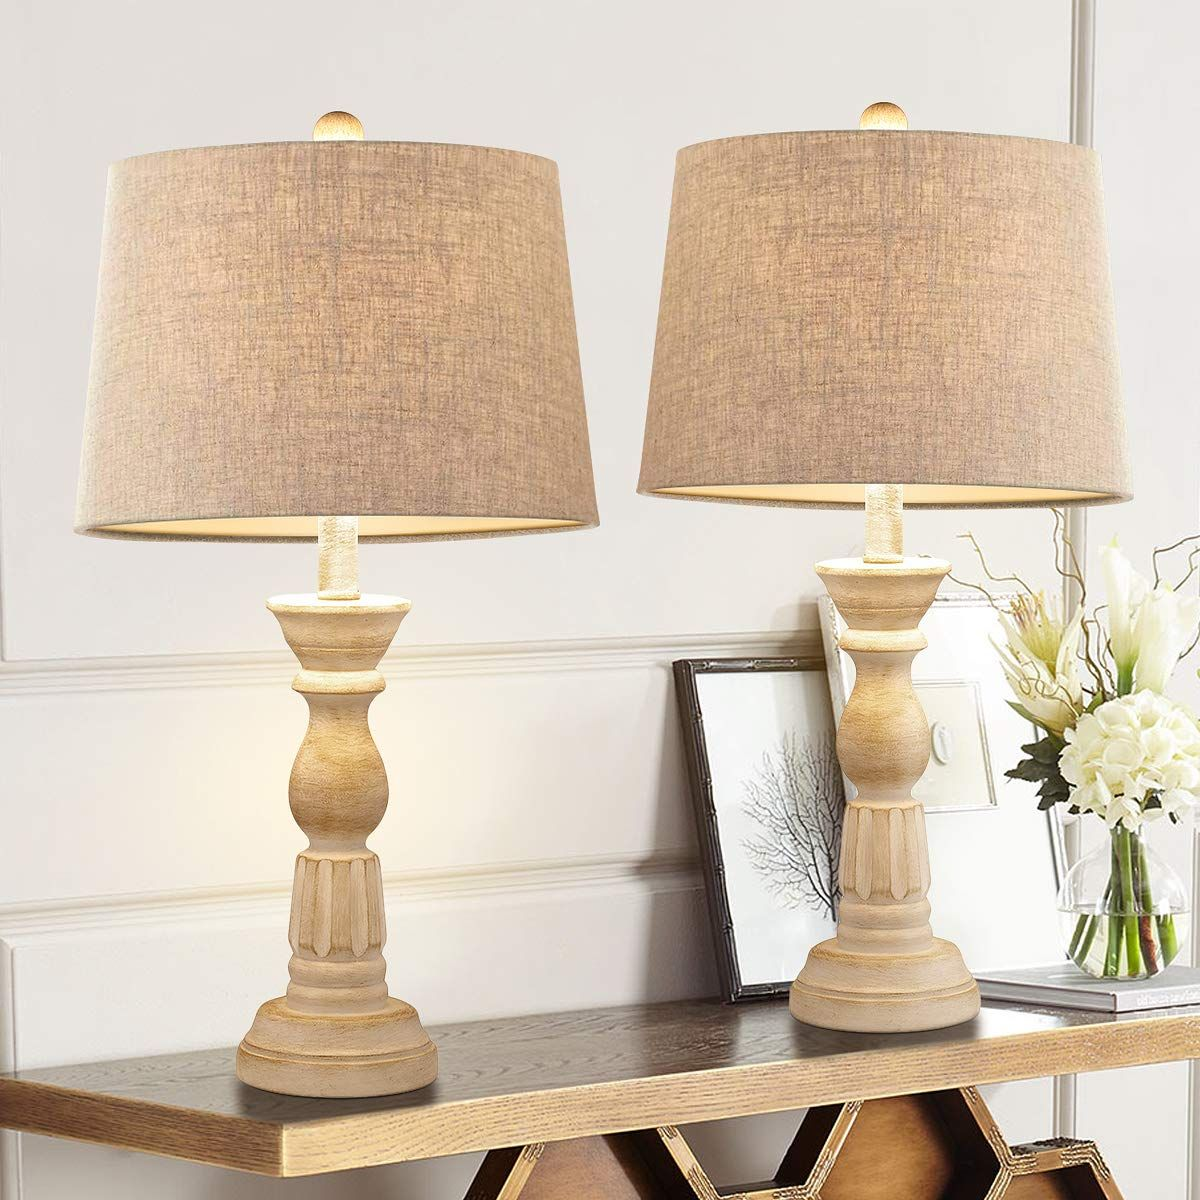 Oneach Table Lamps Set of 2 for Living Room Bedside Desk